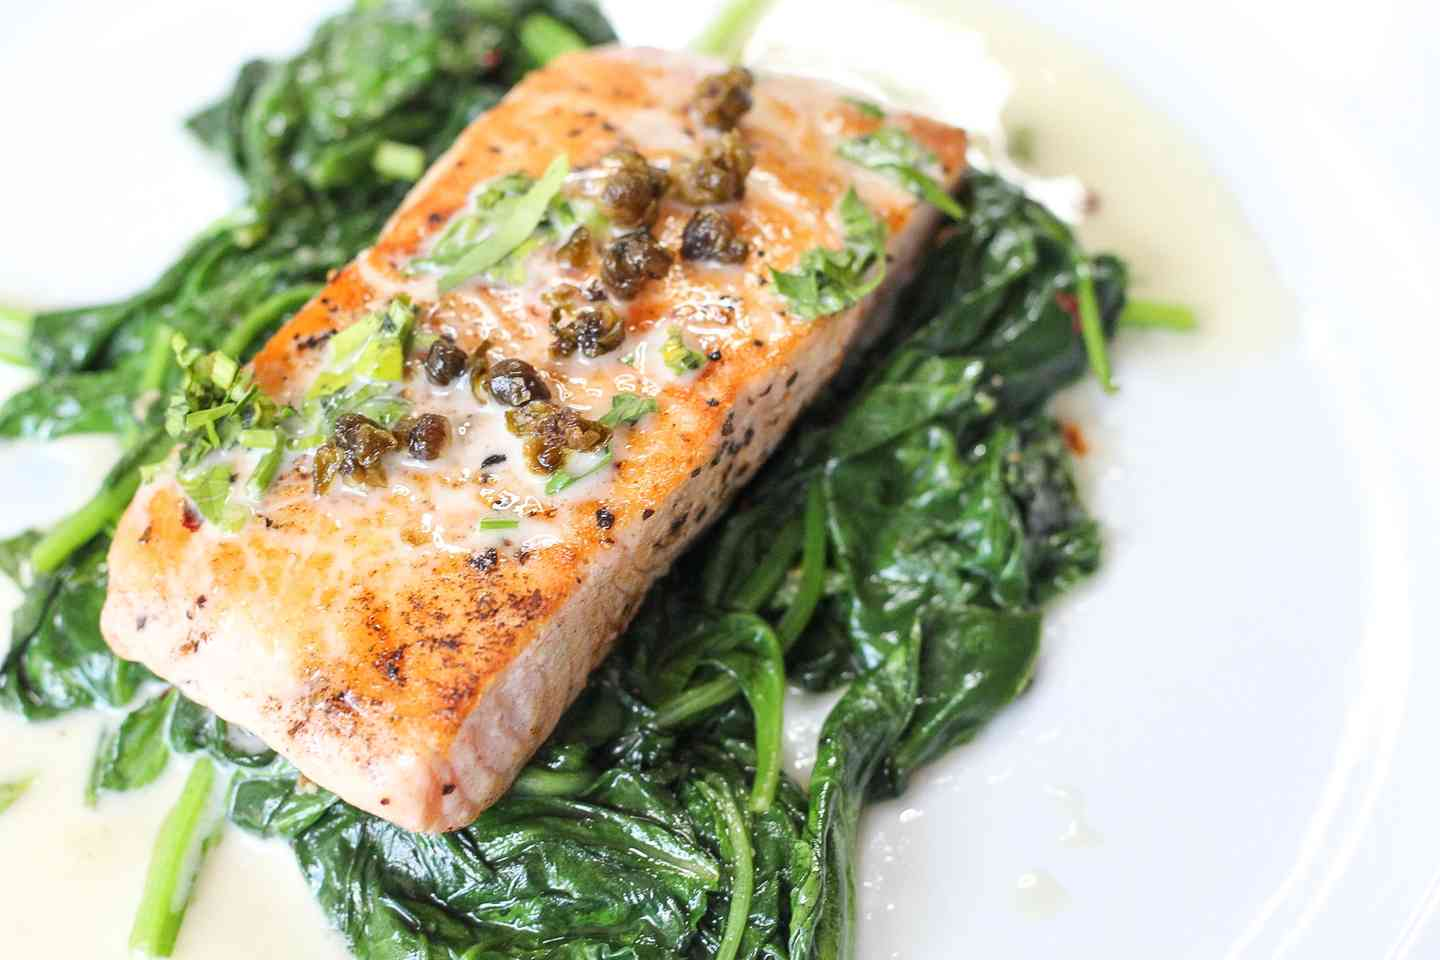 Grilled Salmon*